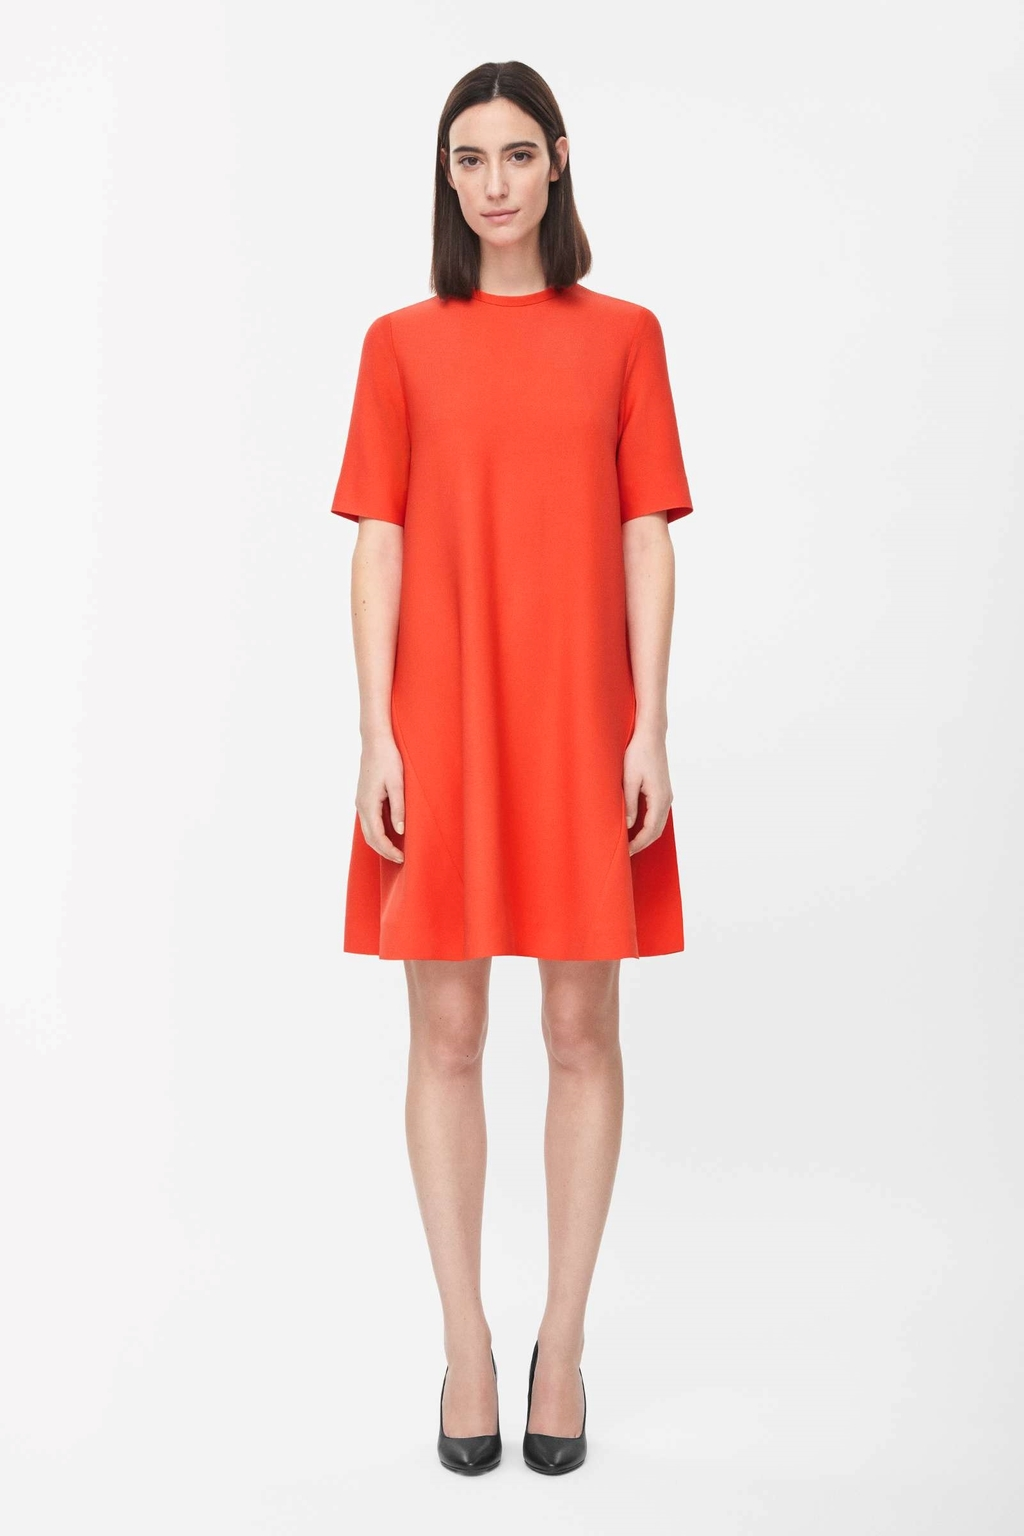 Flared A Line Dress - style: a-line; length: mid thigh; fit: loose; pattern: plain; predominant colour: bright orange; occasions: evening, creative work; fibres: viscose/rayon - stretch; neckline: crew; sleeve length: short sleeve; sleeve style: standard; pattern type: fabric; texture group: jersey - stretchy/drapey; season: s/s 2015; wardrobe: highlight